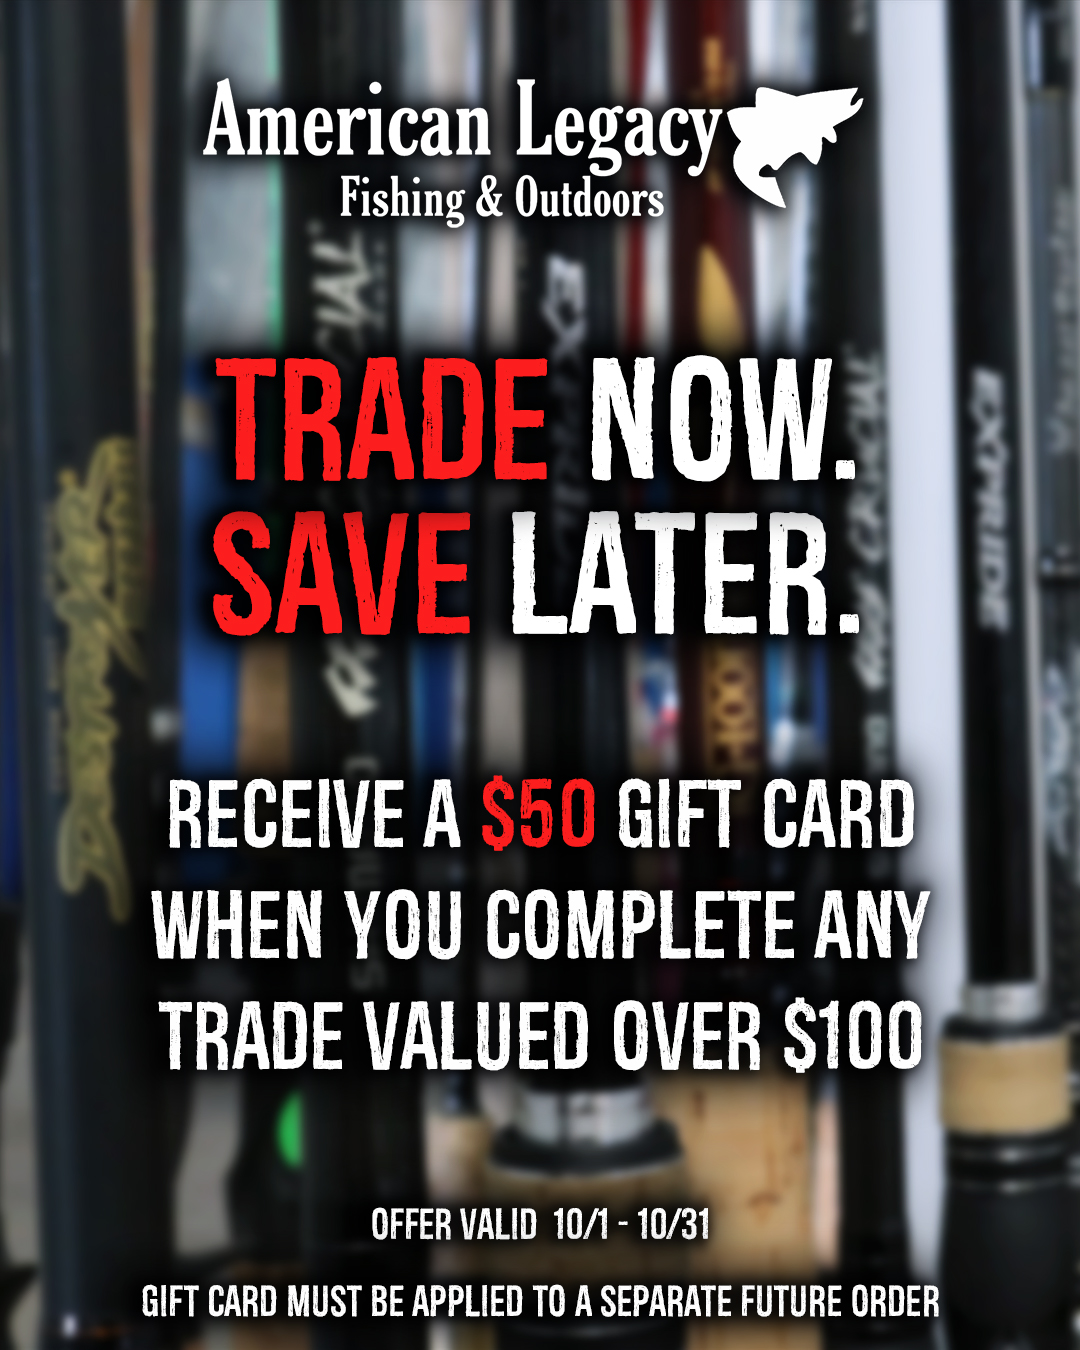 Trade Now Save Later